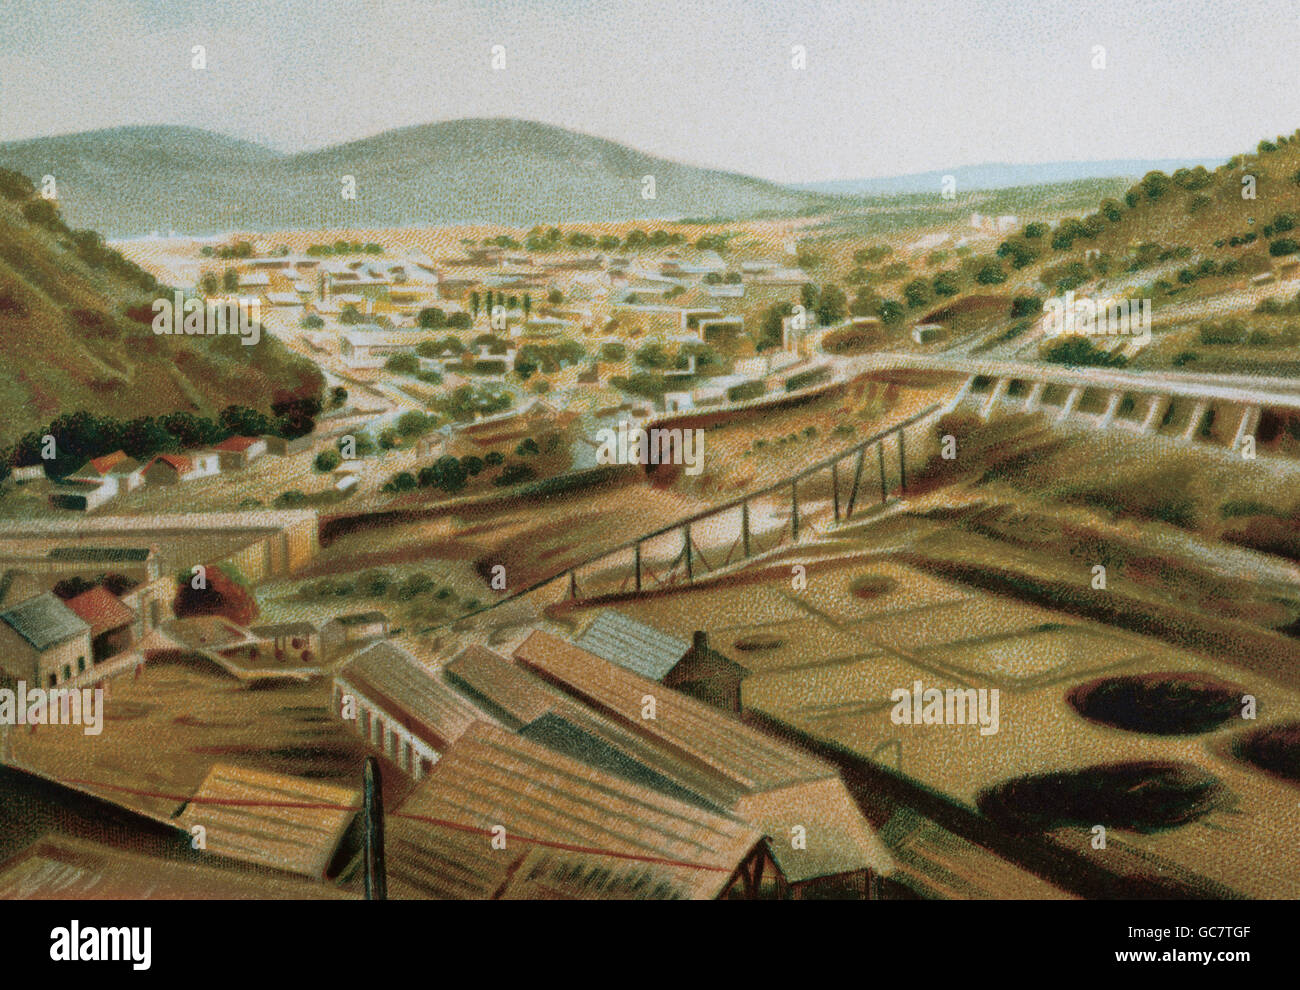 History of Mexico. Hidalgo State. Pachuca. Lithography, 1880. - Stock Image